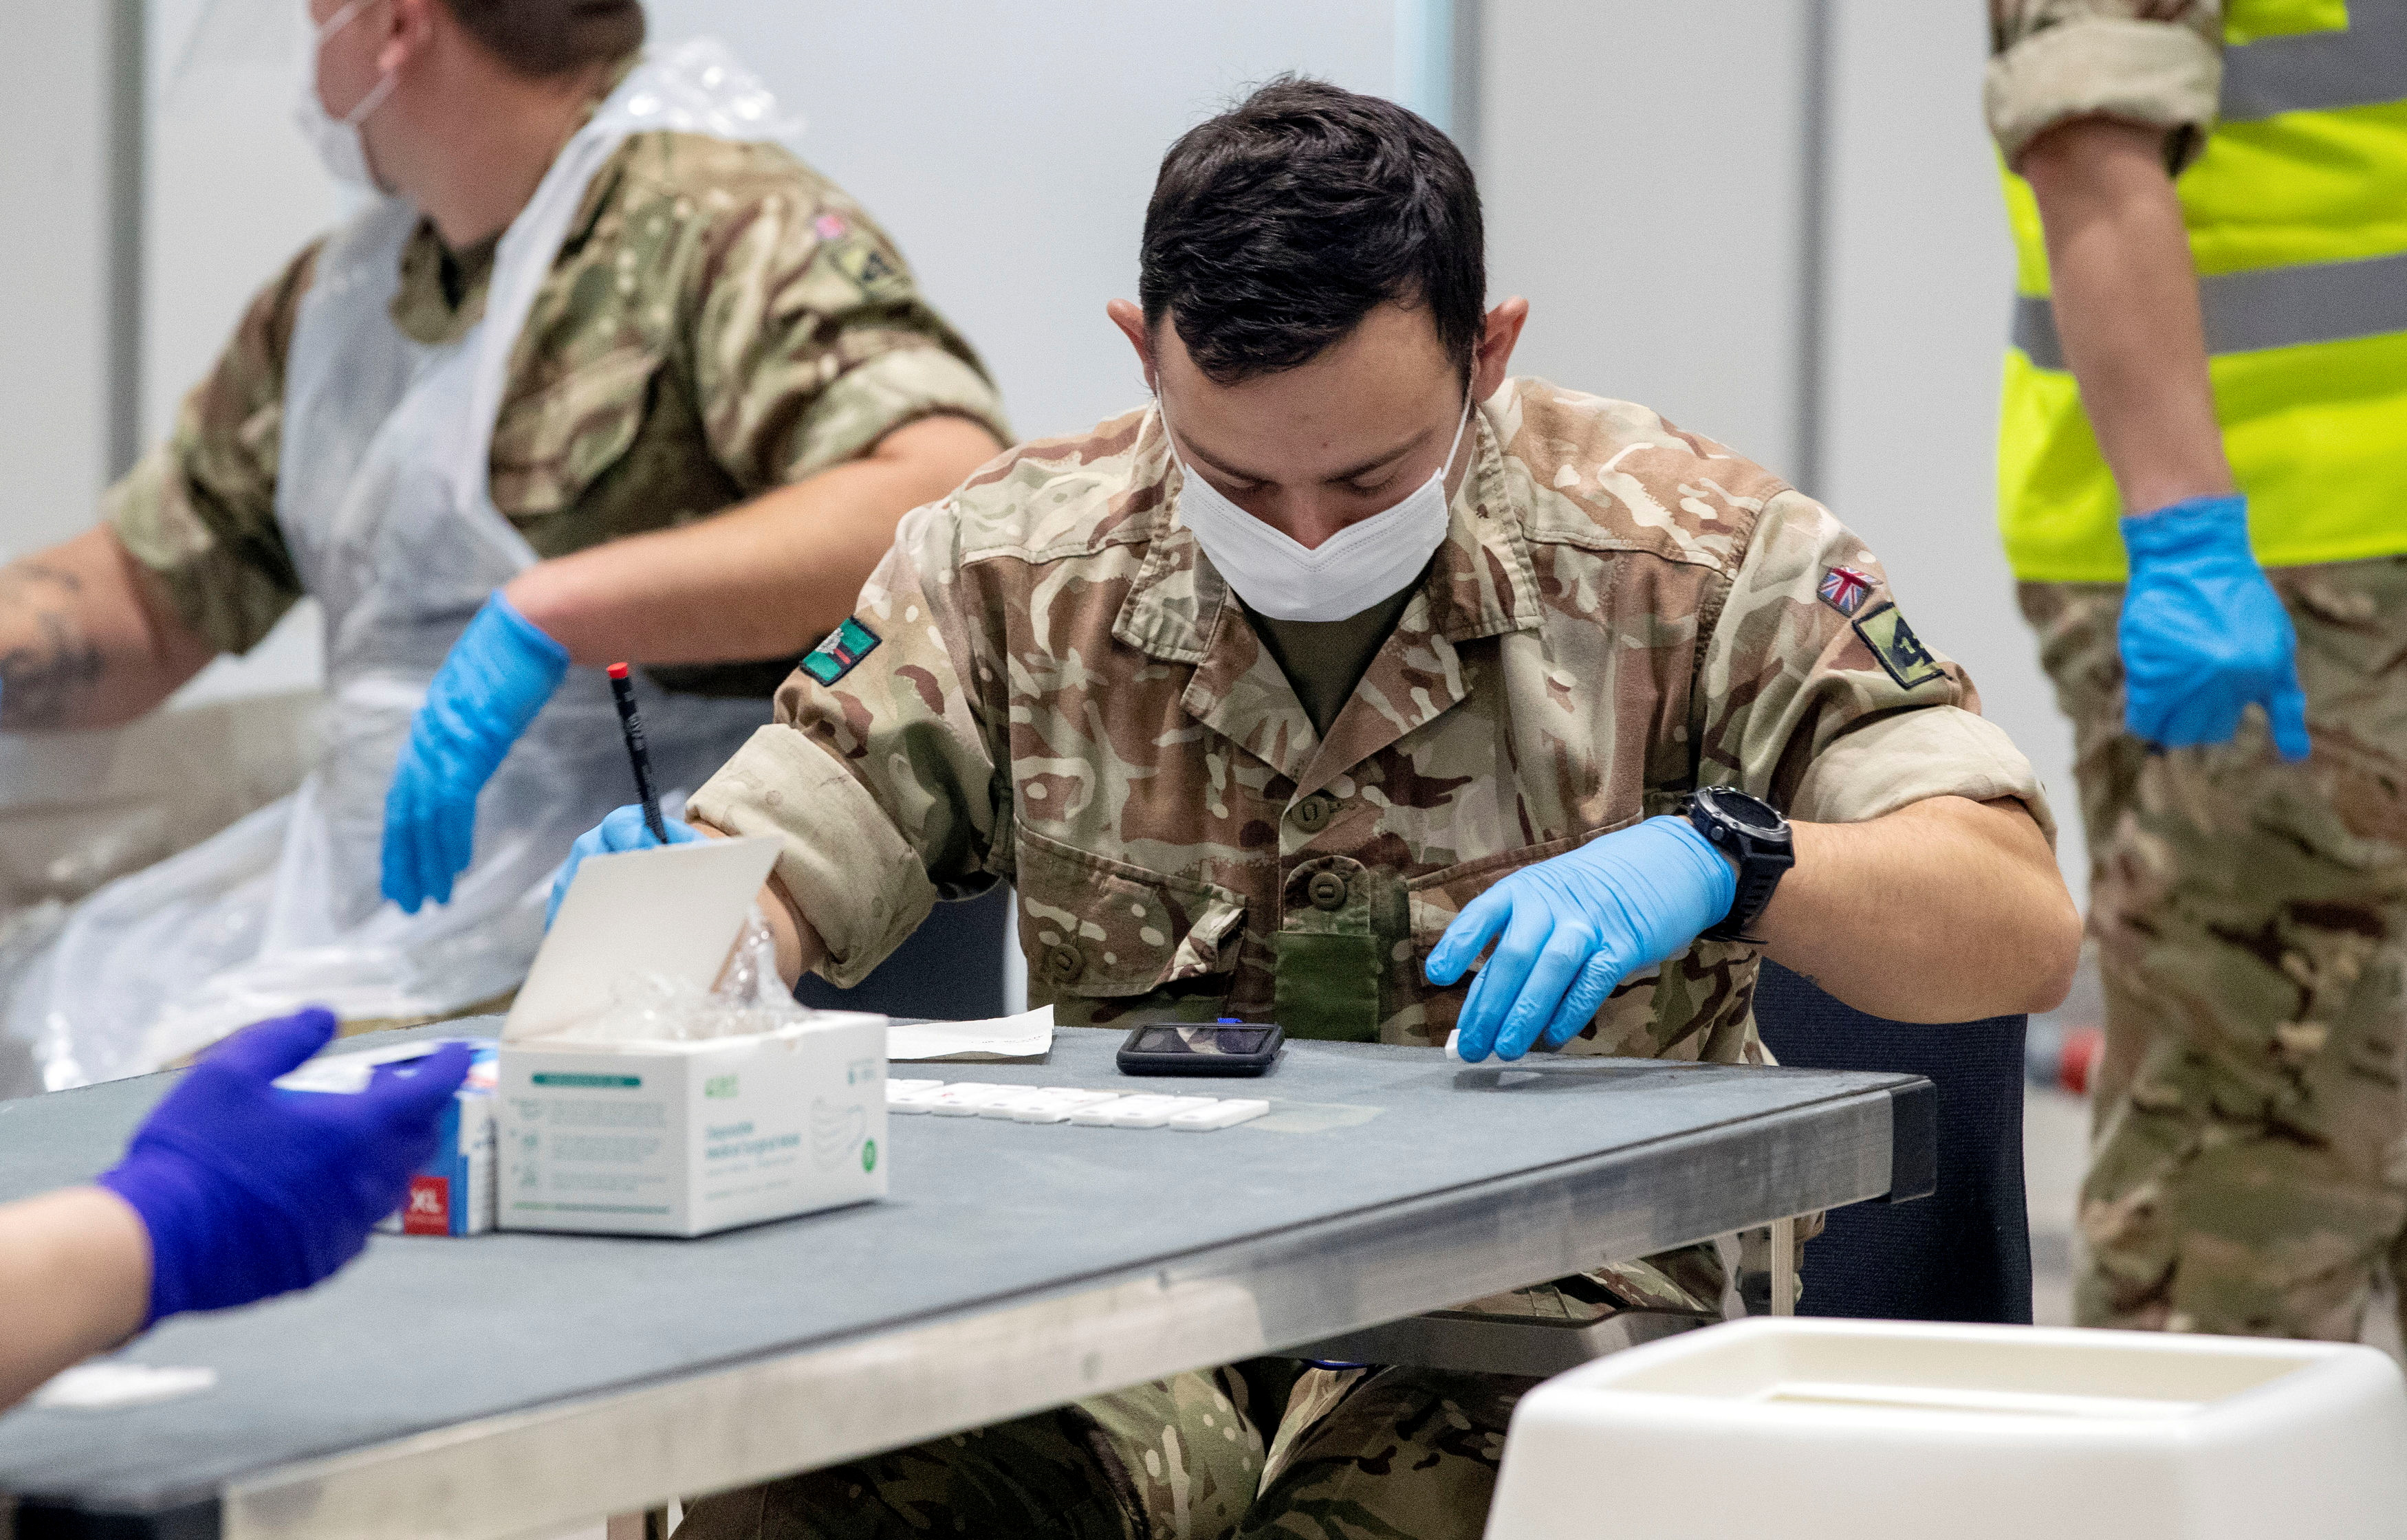 Soldiers work at The Exhibition Centre, which has been set up as a testing centre as part of the mass coronavirus disease (COVID-19) testing, in Liverpool, Britain, November 6, 2020. Peter Byrne/PA Wire/Pool via REUTERS/File Photo